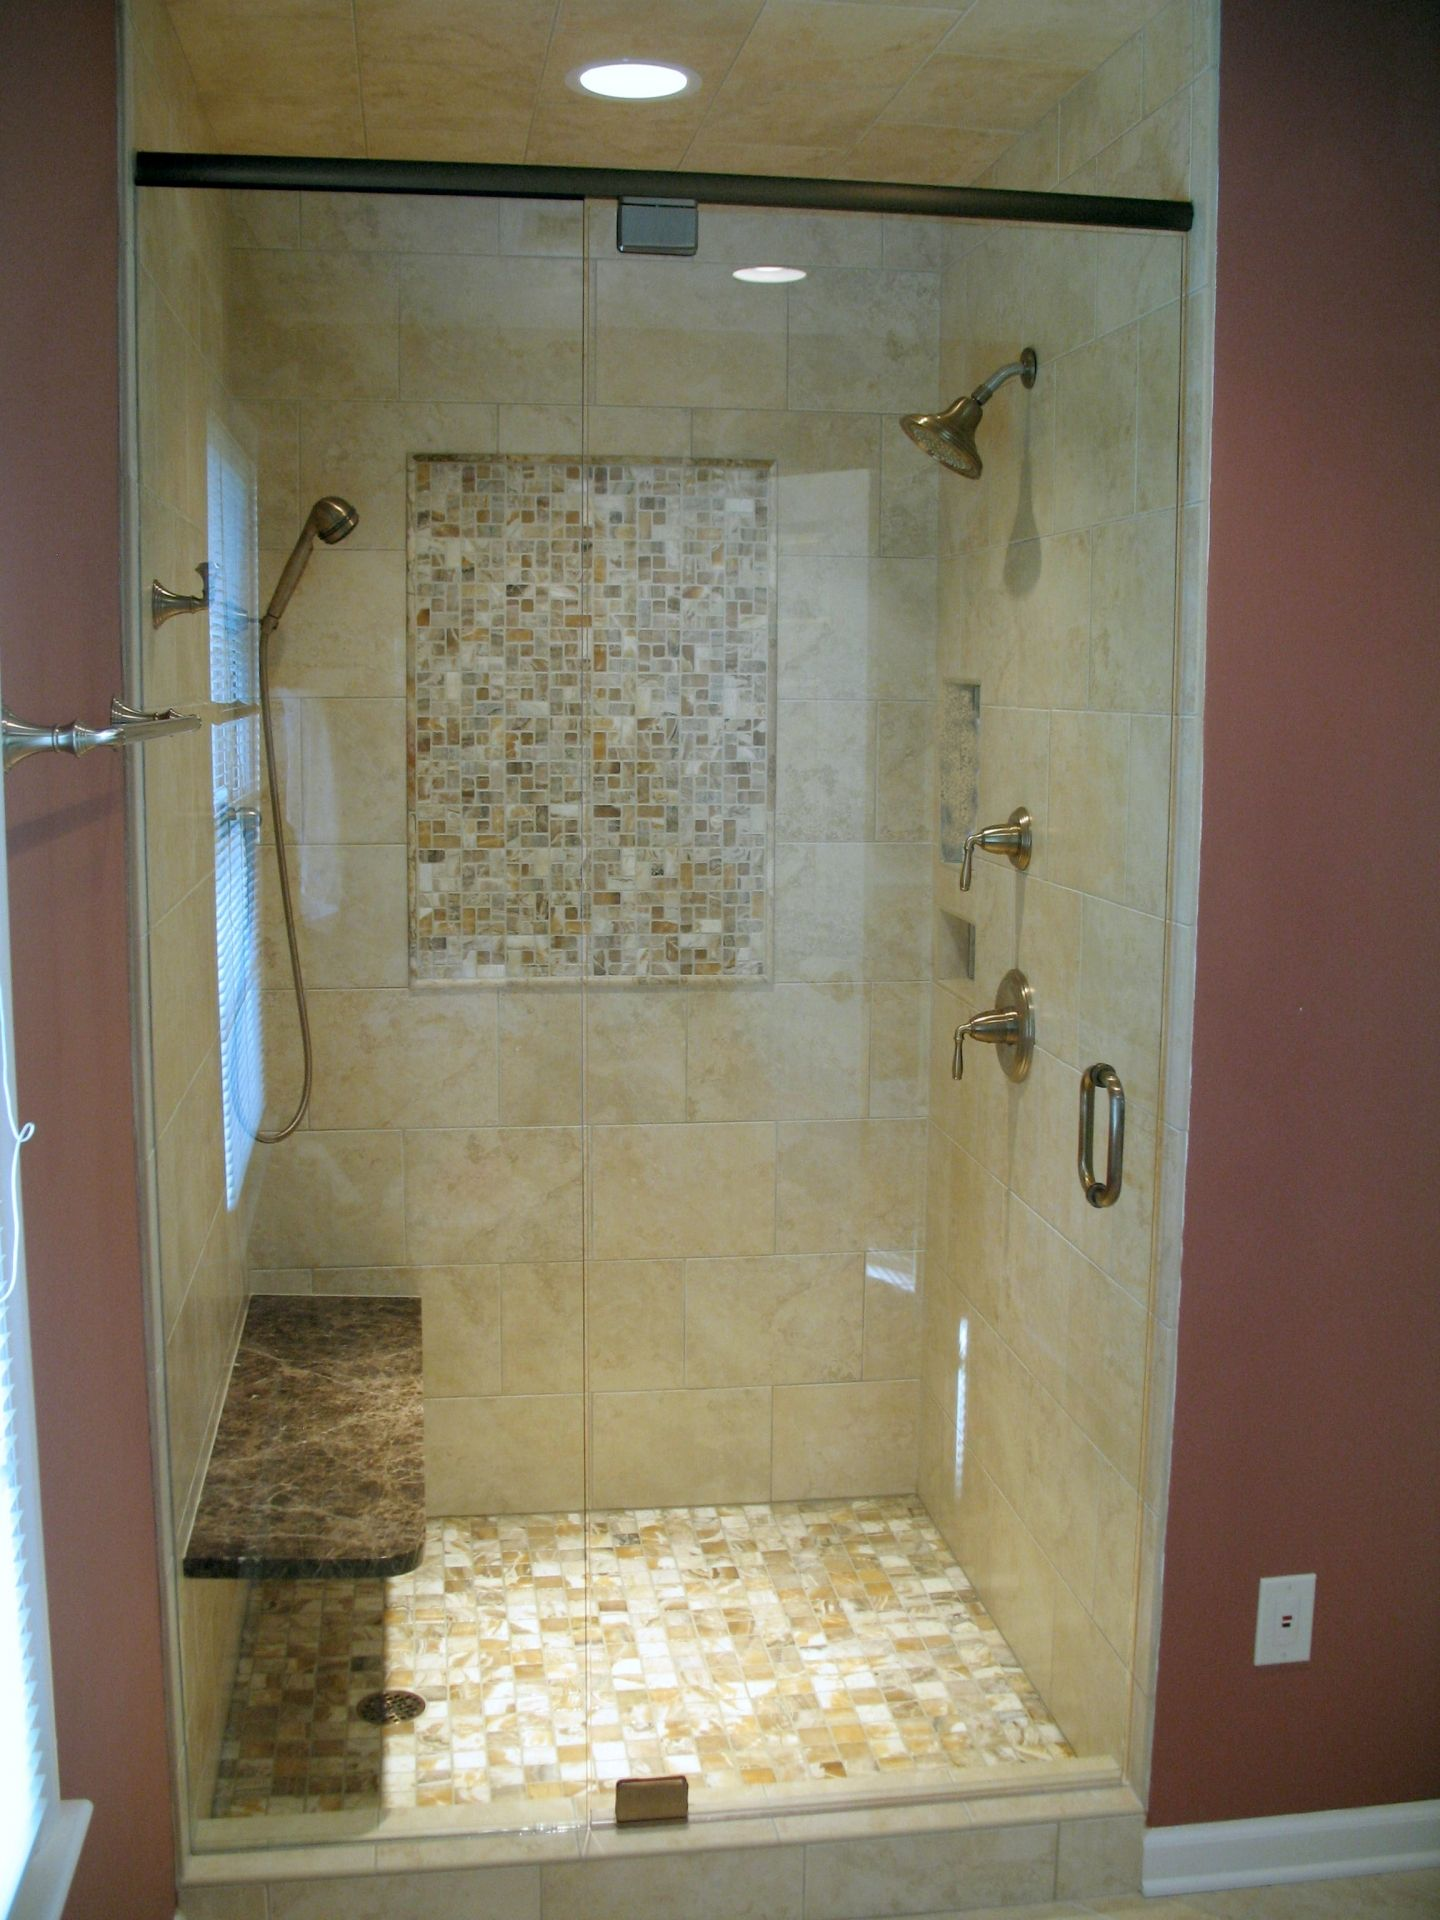 Small bathroom shower doors - This Photo About The Proper Shower Tile Designs And Size Entitled As Shower Tile Ideas Designs Also Describes And Labeled As Shower Tile Designs